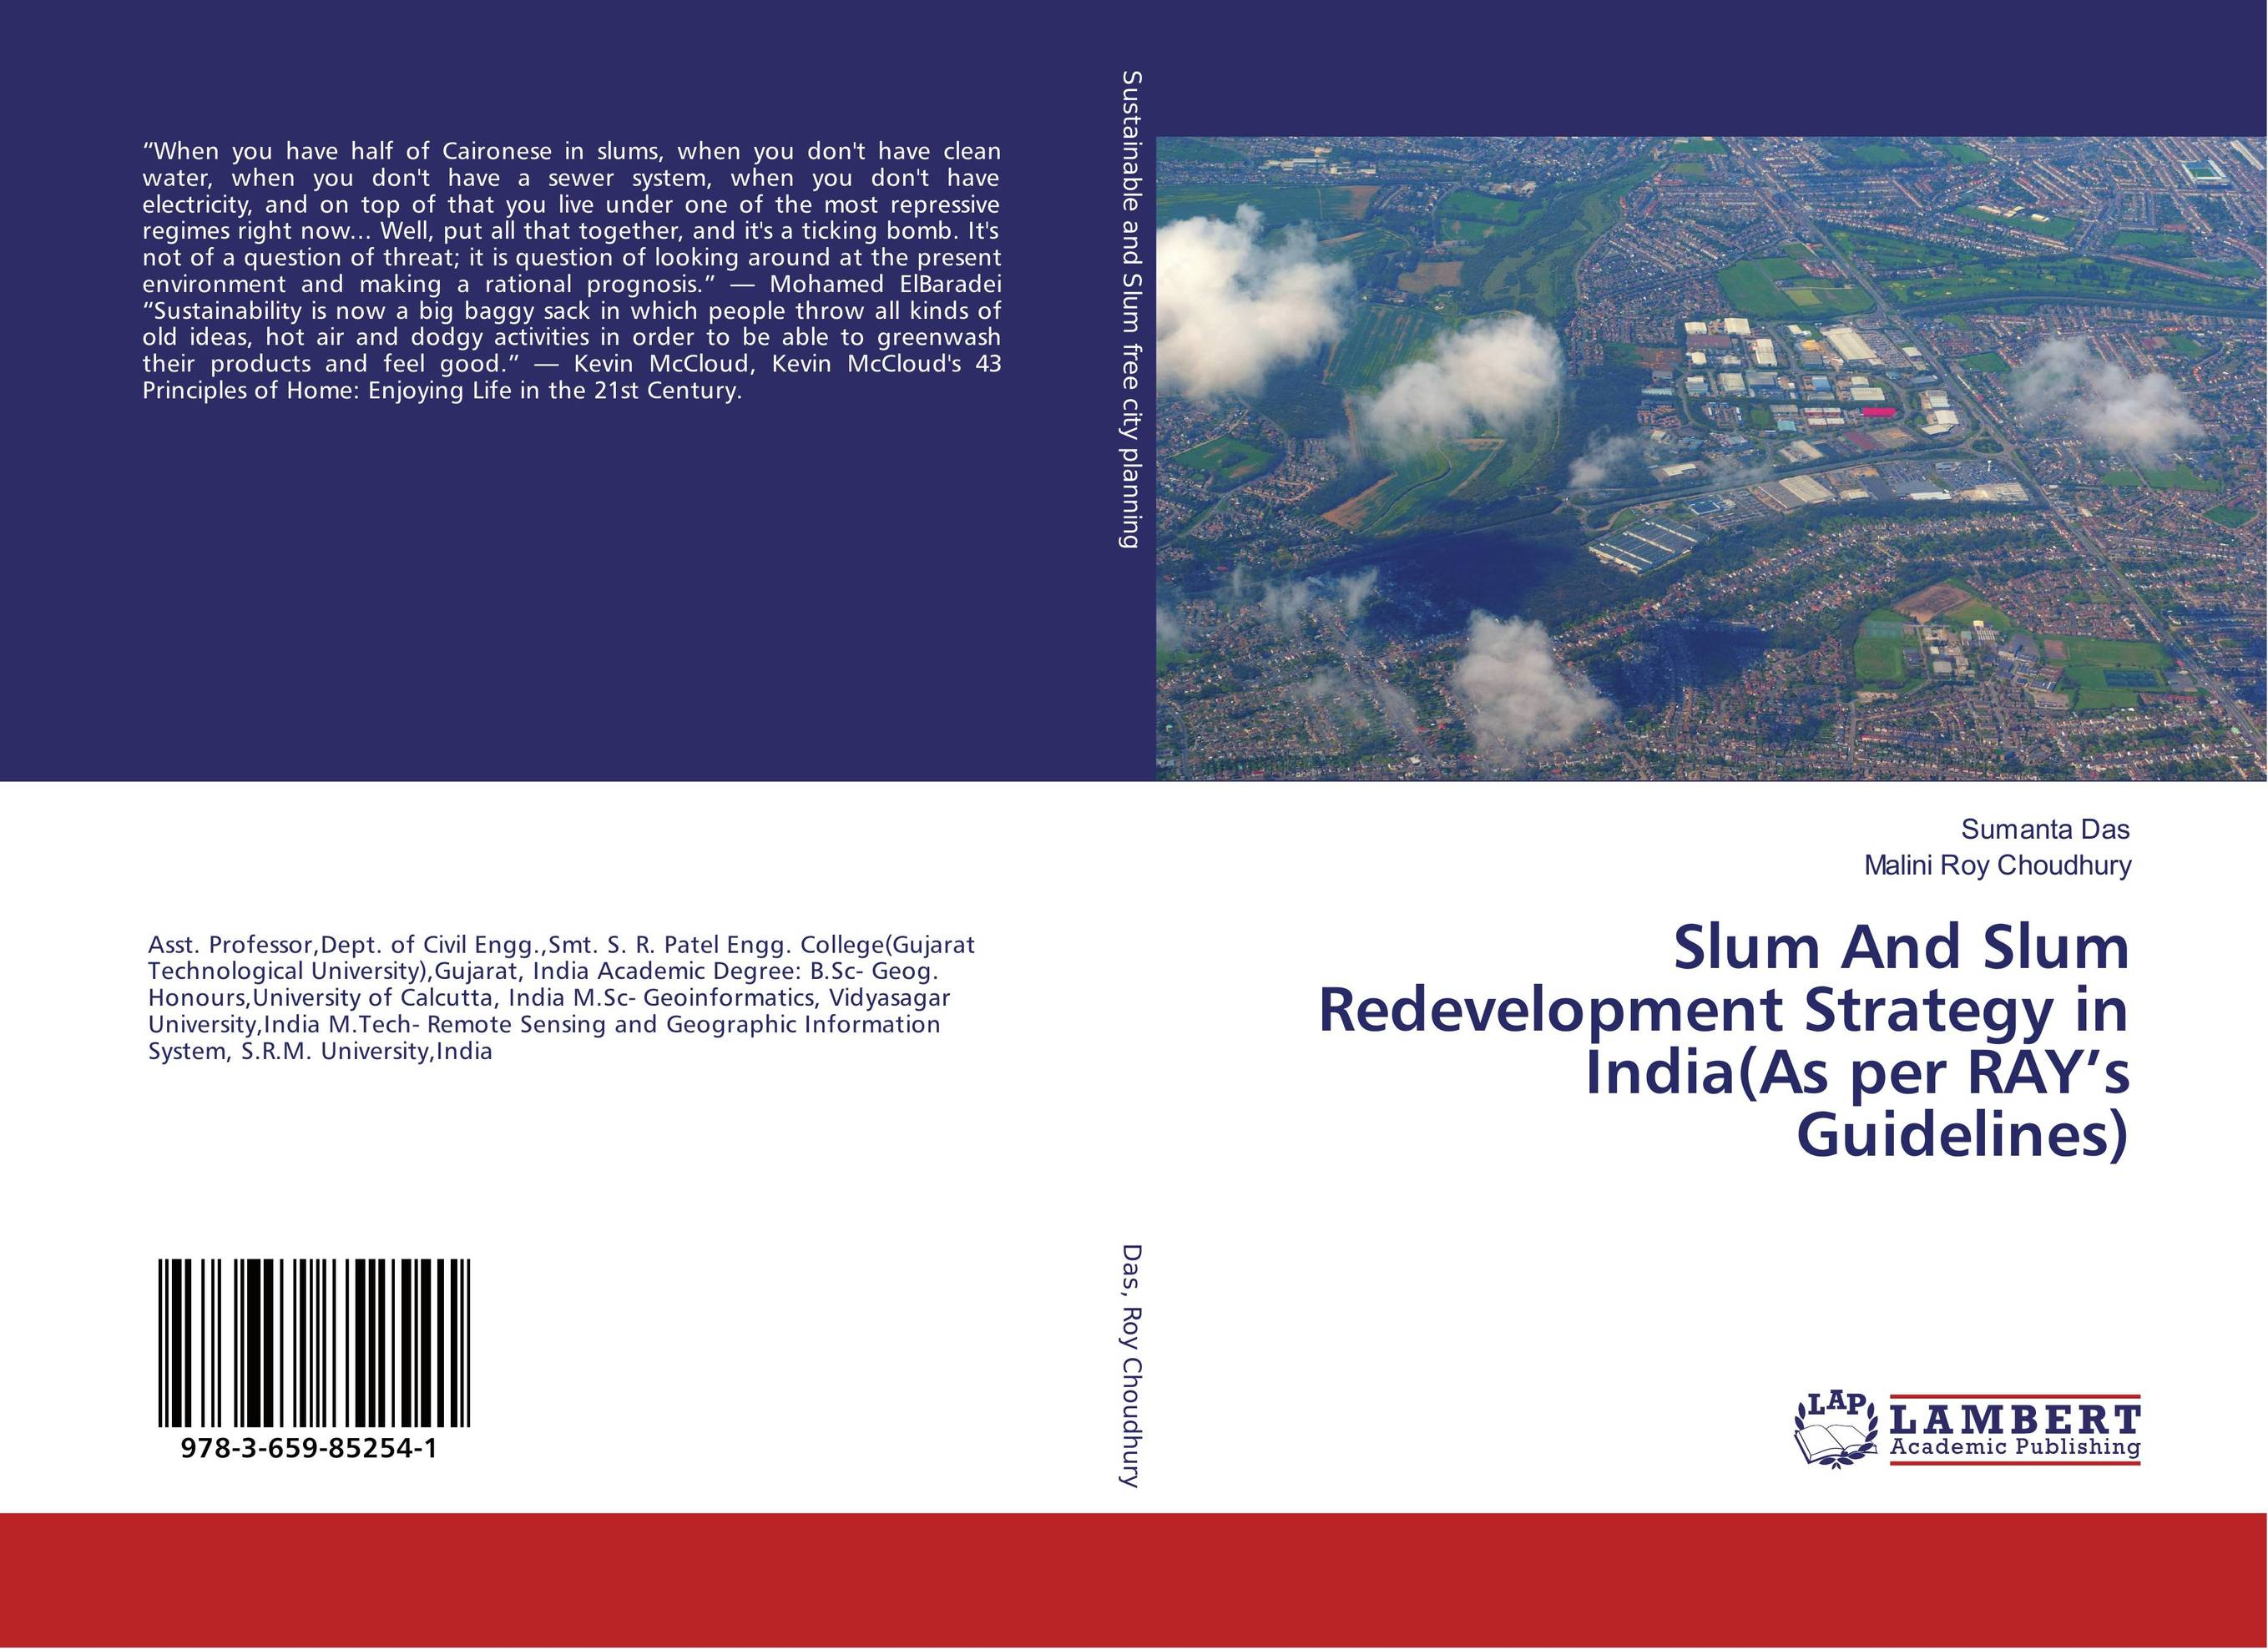 Slum And Slum Redevelopment Strategy in India(As per RAY's Guidelines) pastoralism and agriculture pennar basin india